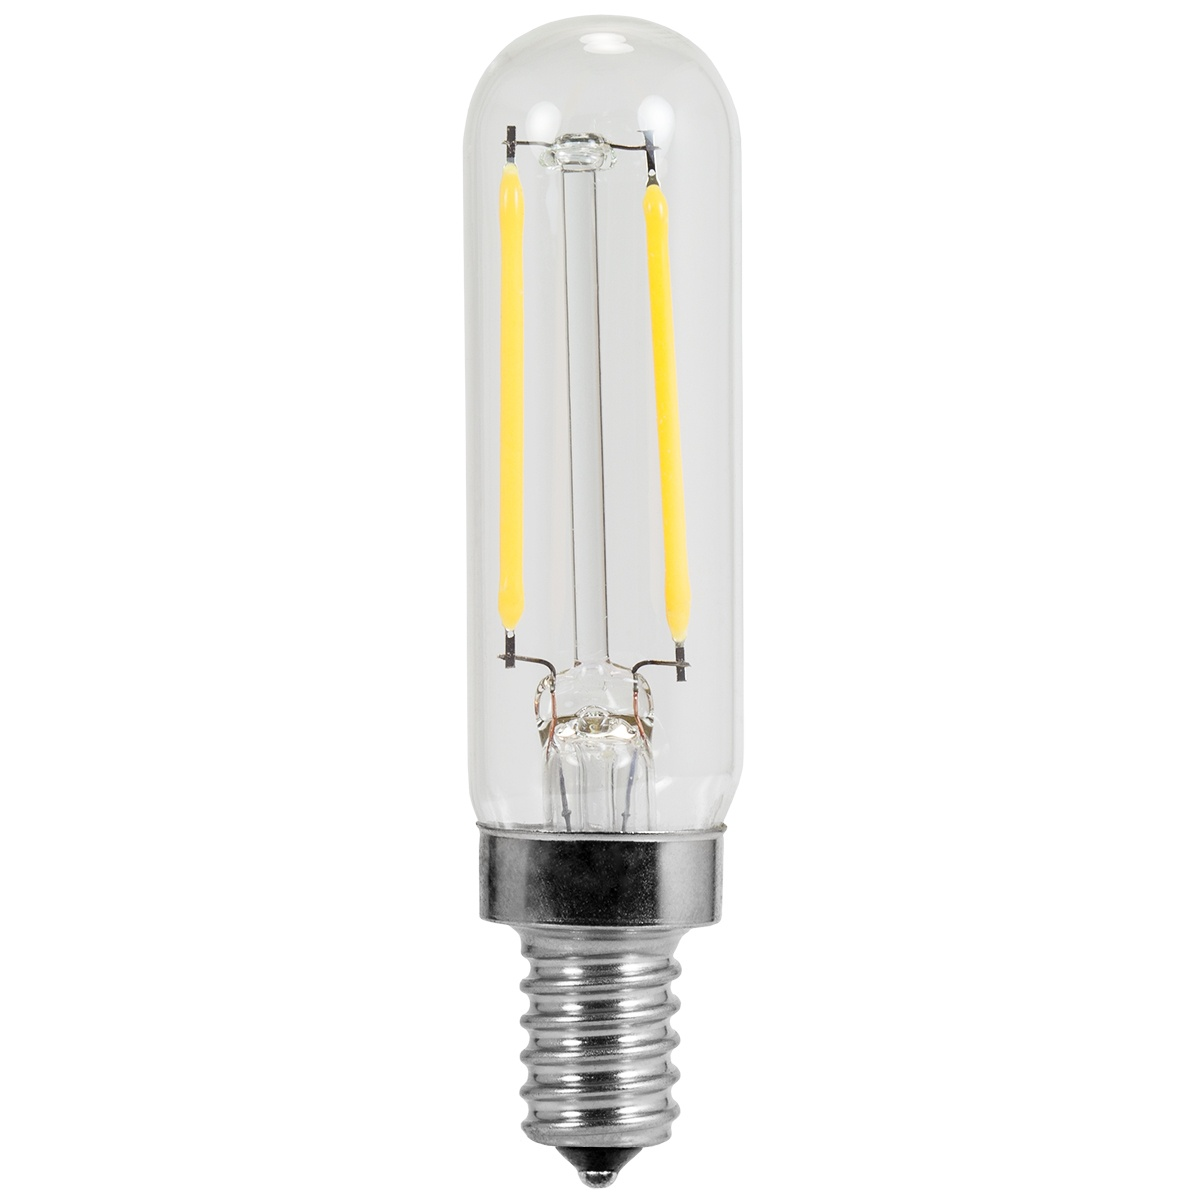 T20 Warm White Led Replacement Bulbs